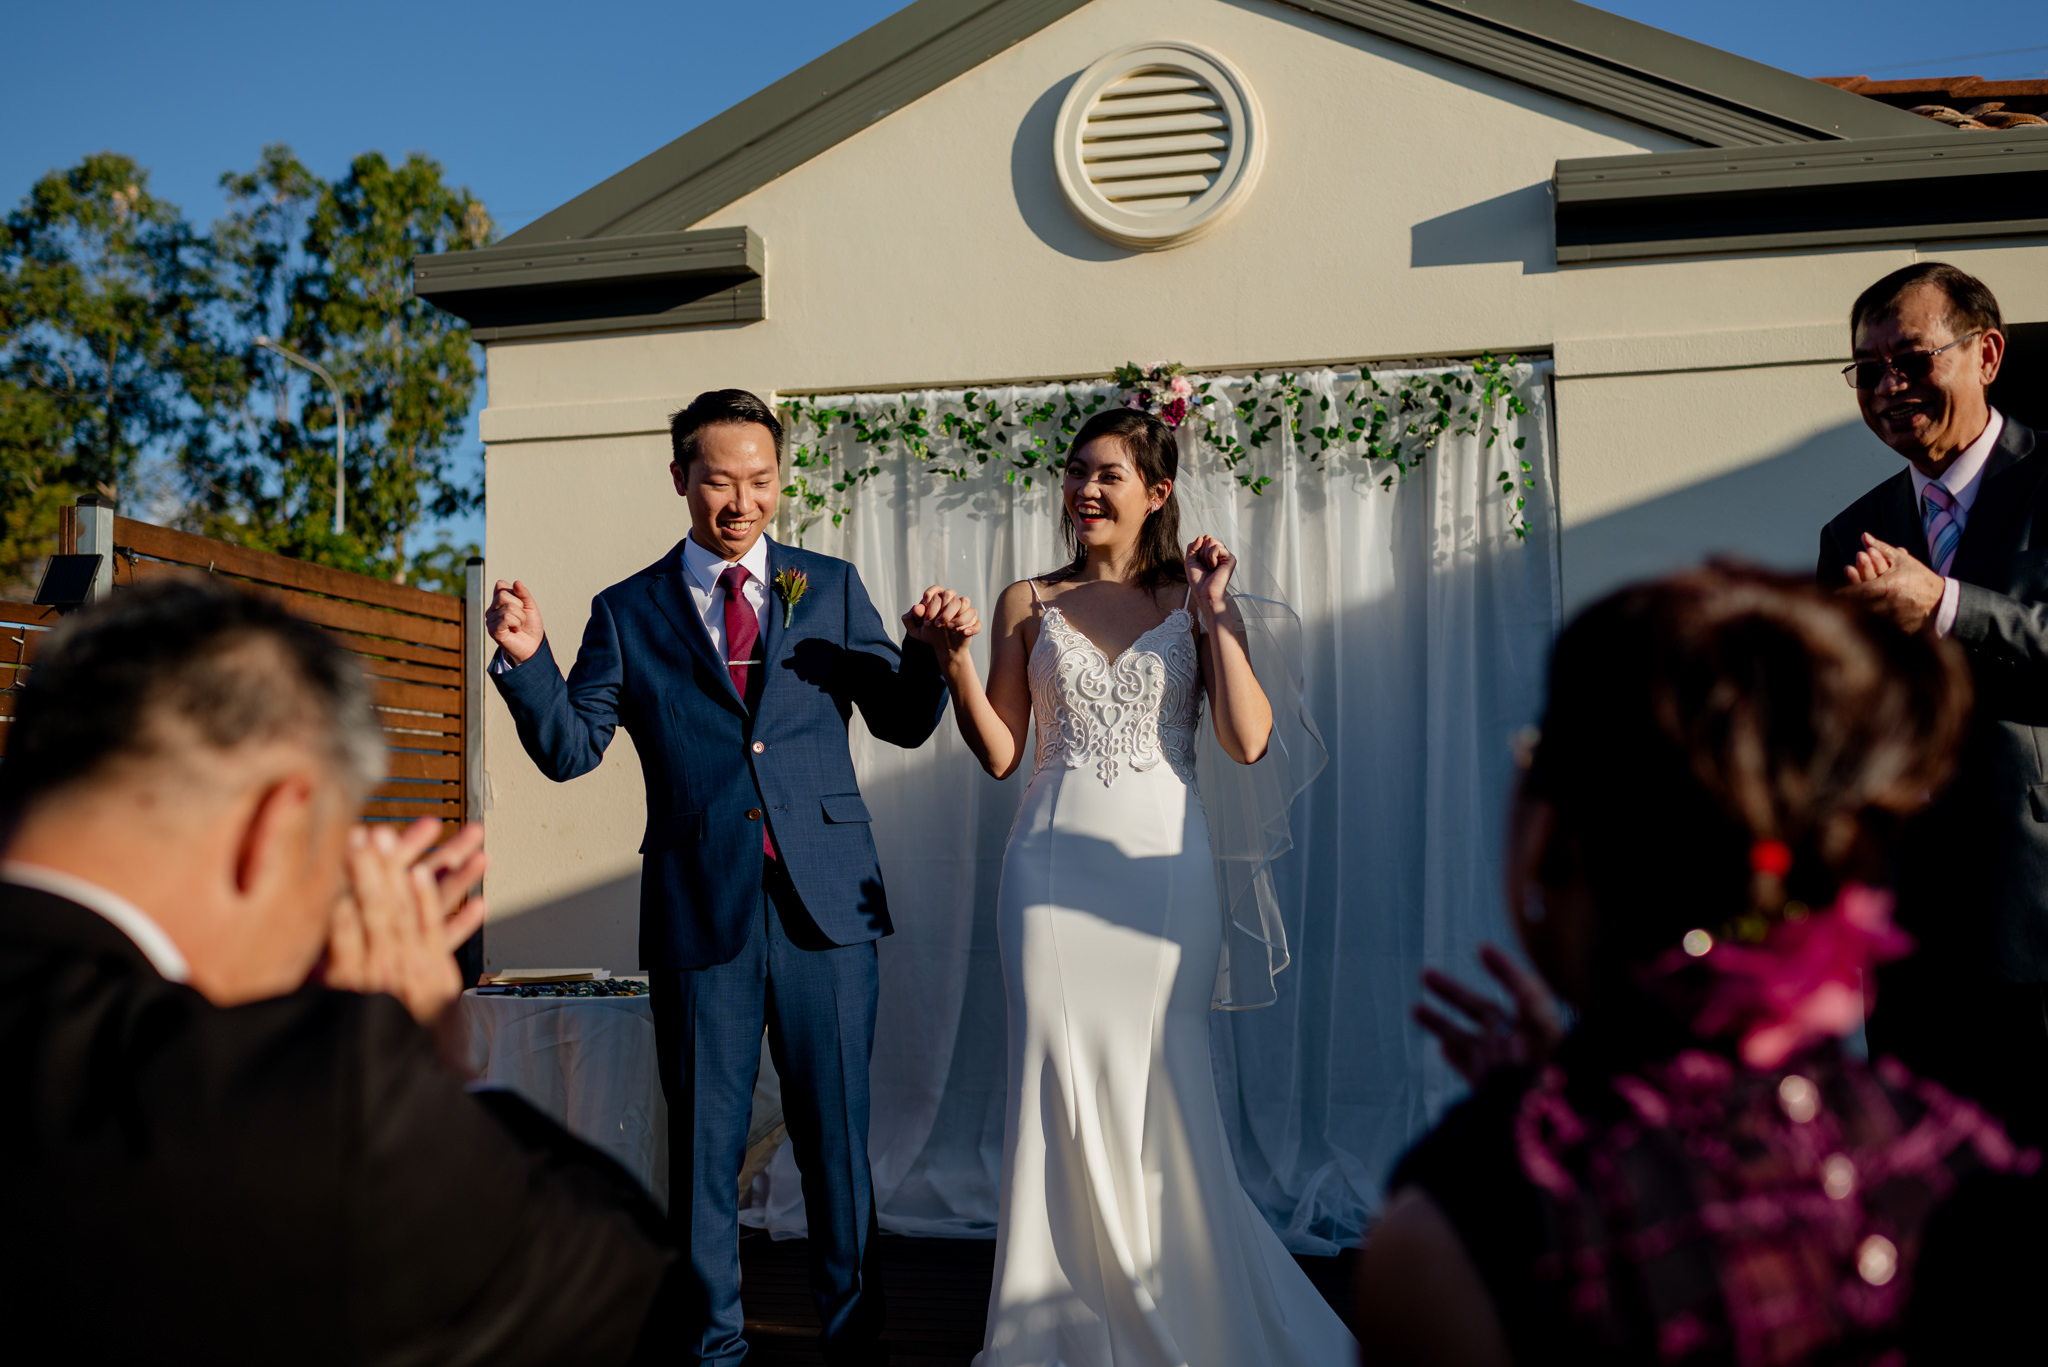 Two newlyweds laugh and cheer with their fists in the air as wedding guests applaud